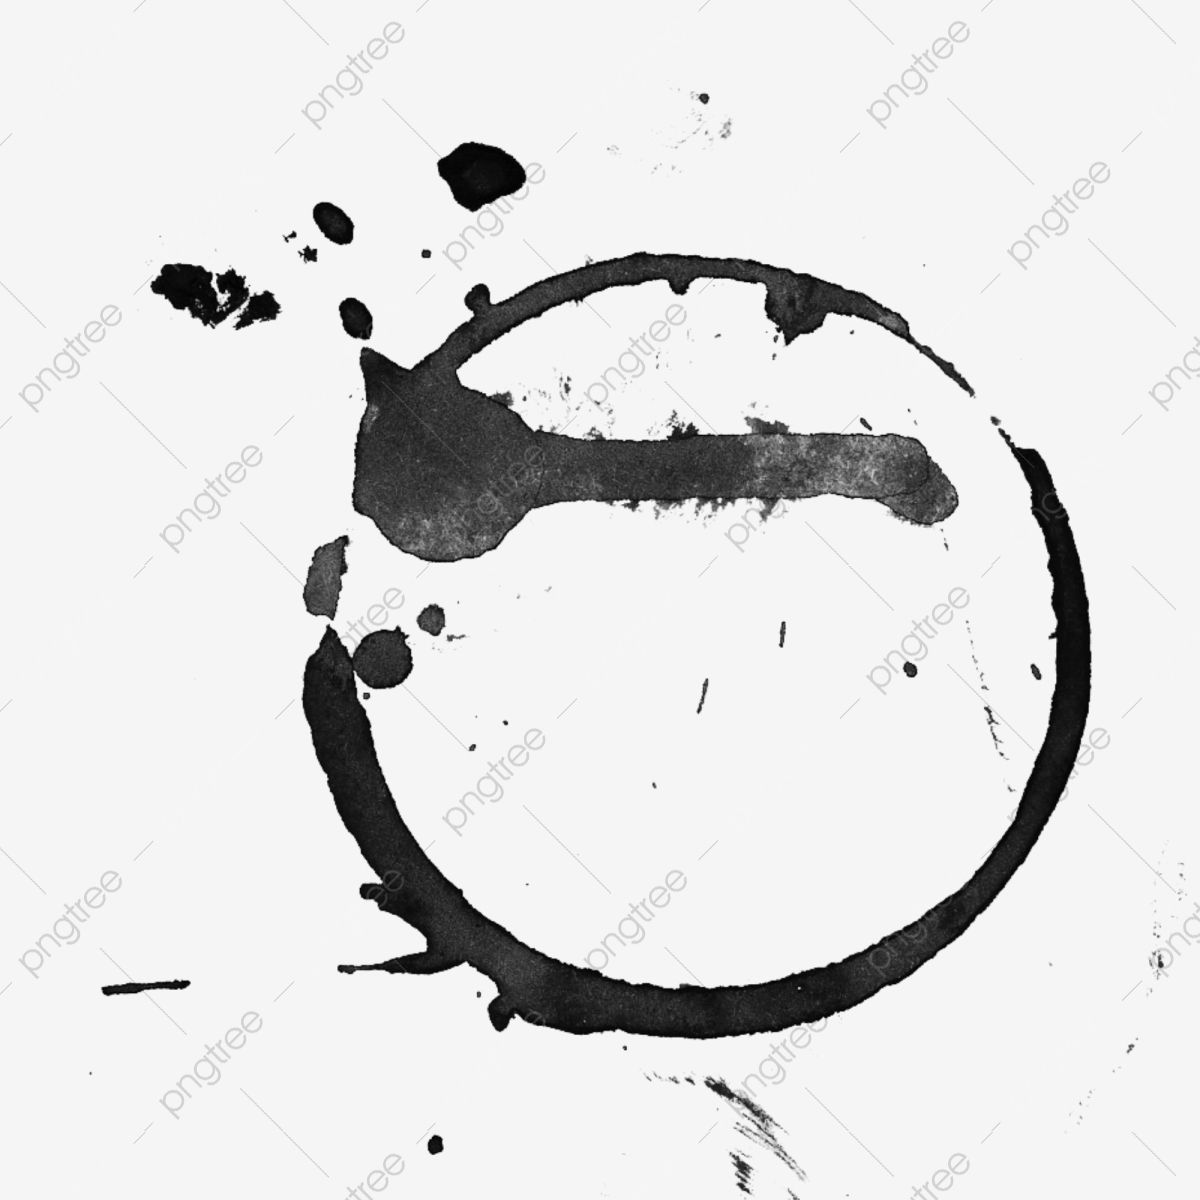 Circle Black Splashing Ink Watercolor Cartoon Hand Painted Ink Png Transparent Clipart Image And Psd File For Free Download Watercolor Graphic Graphic Design Background Templates Circle Clipart